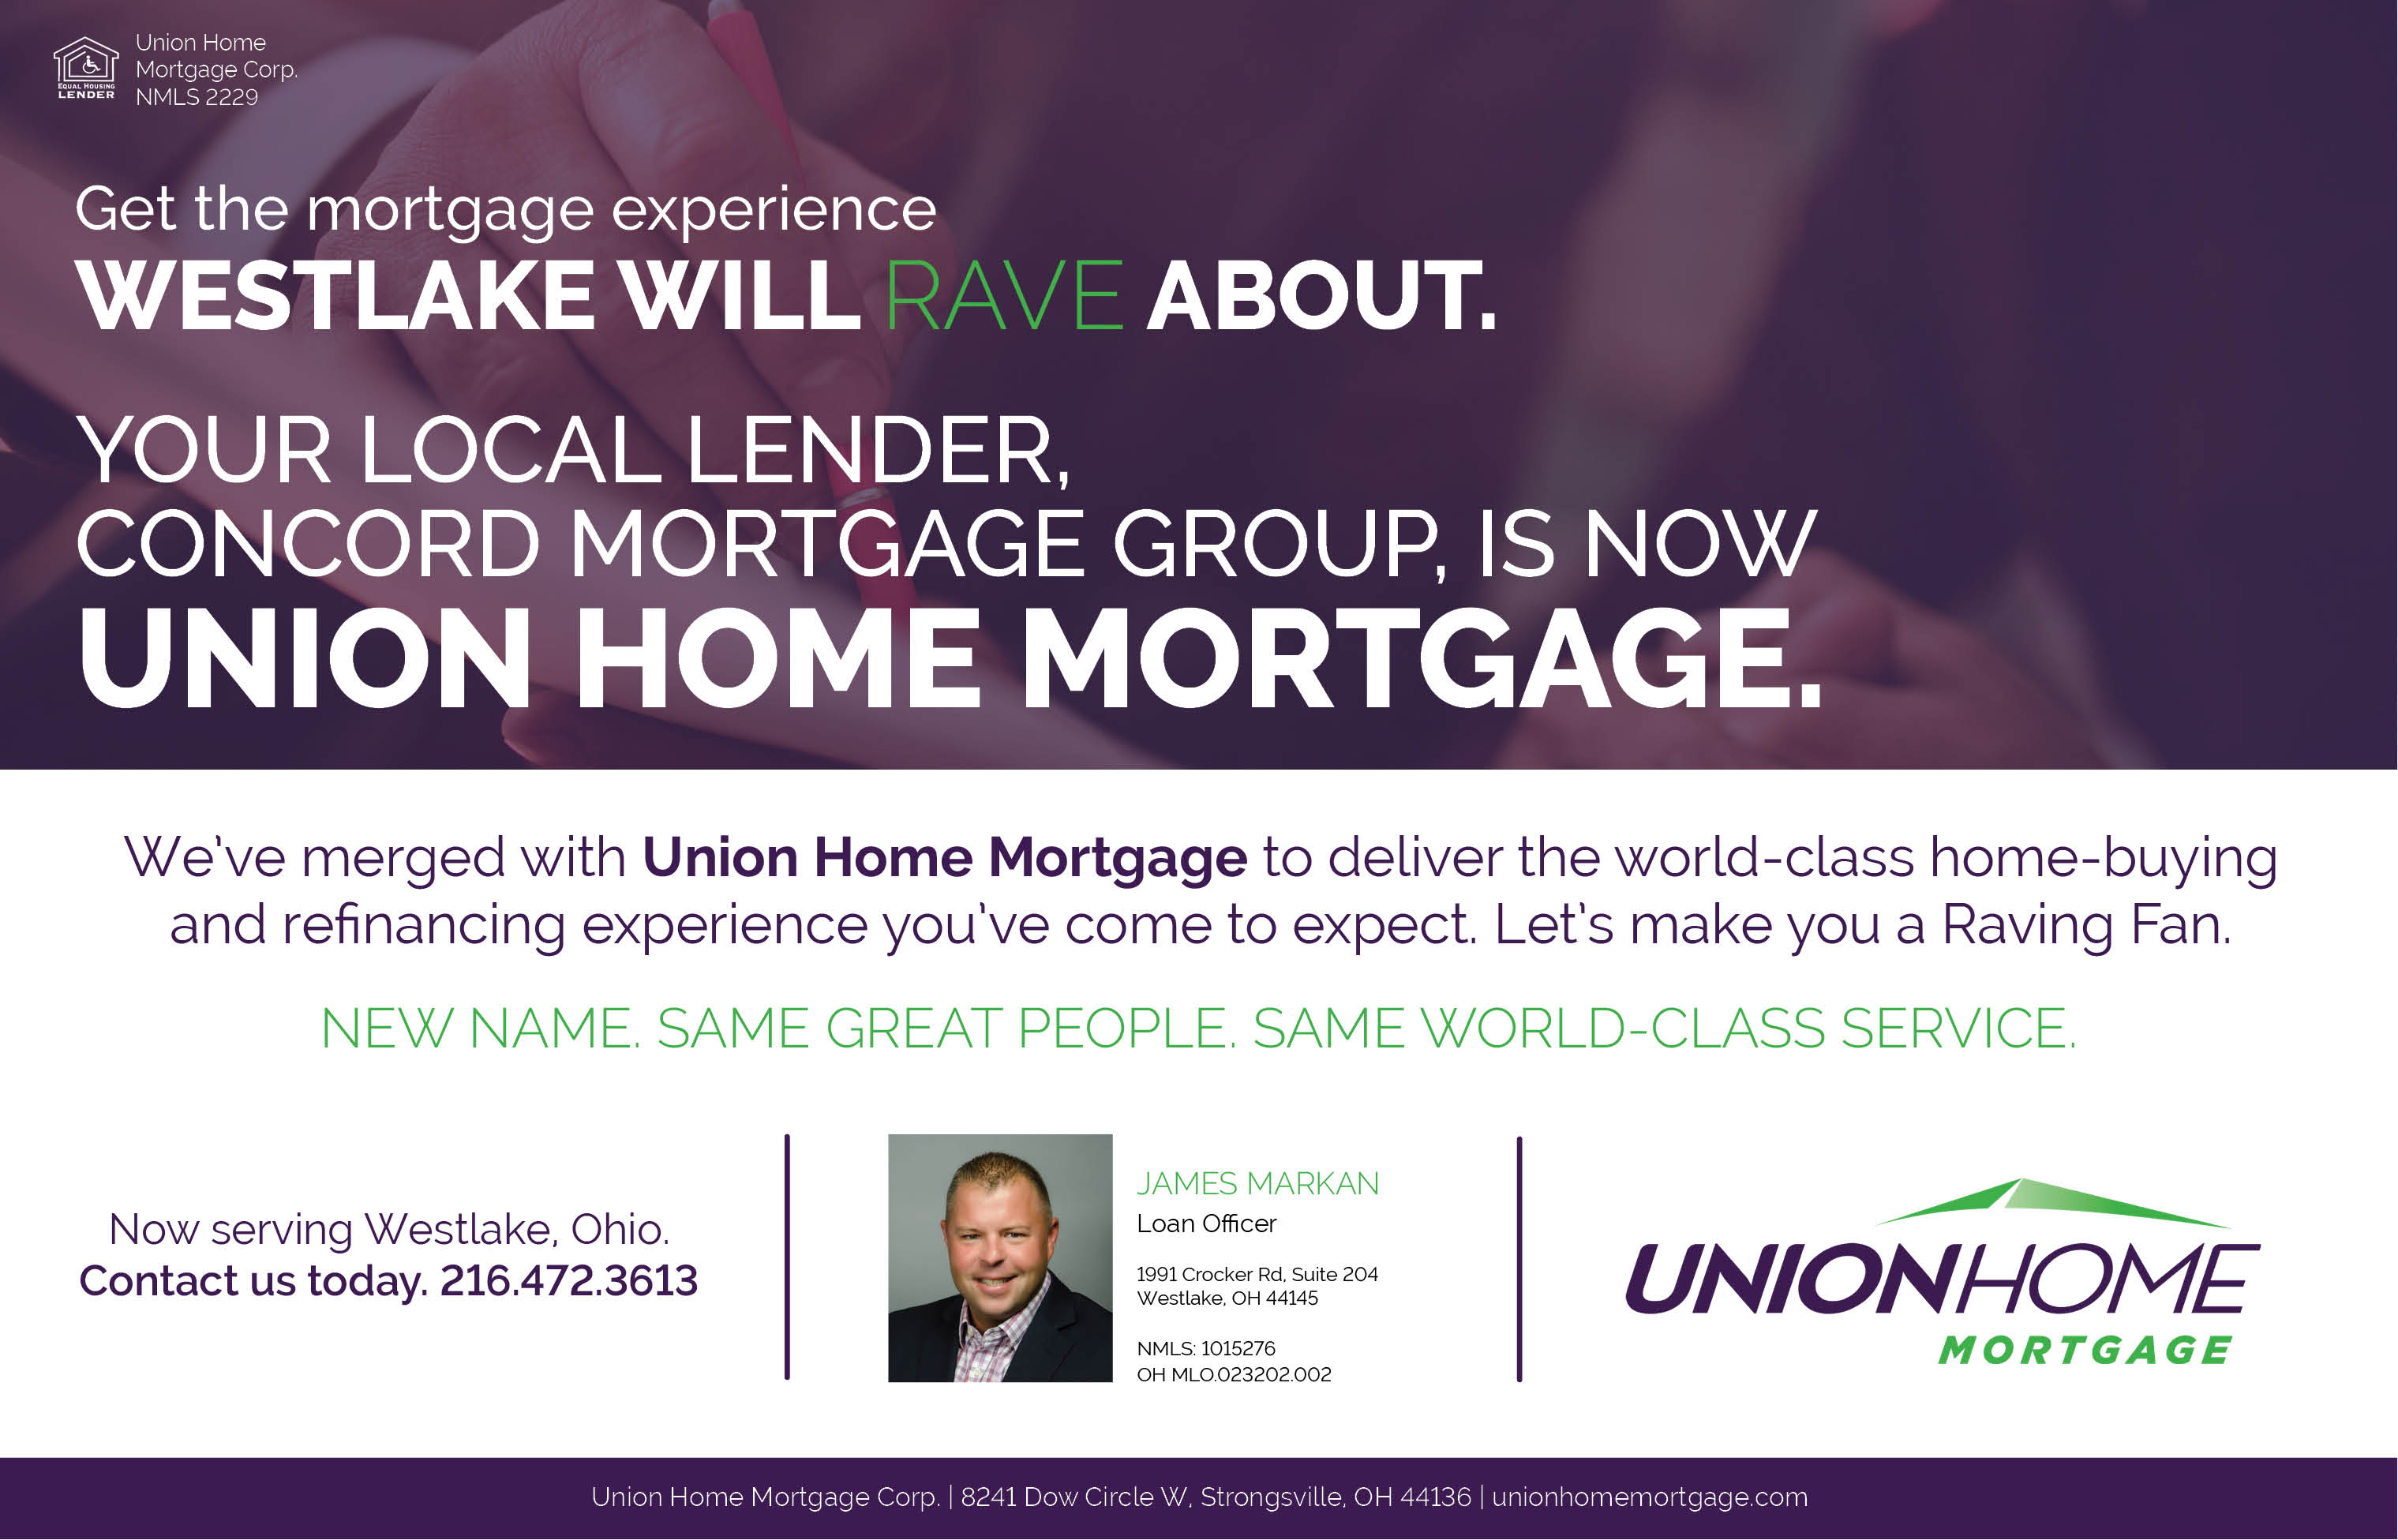 NOIC And Concord Merge With Union Home Mortgage To Deliver A Rave Worthy Experience